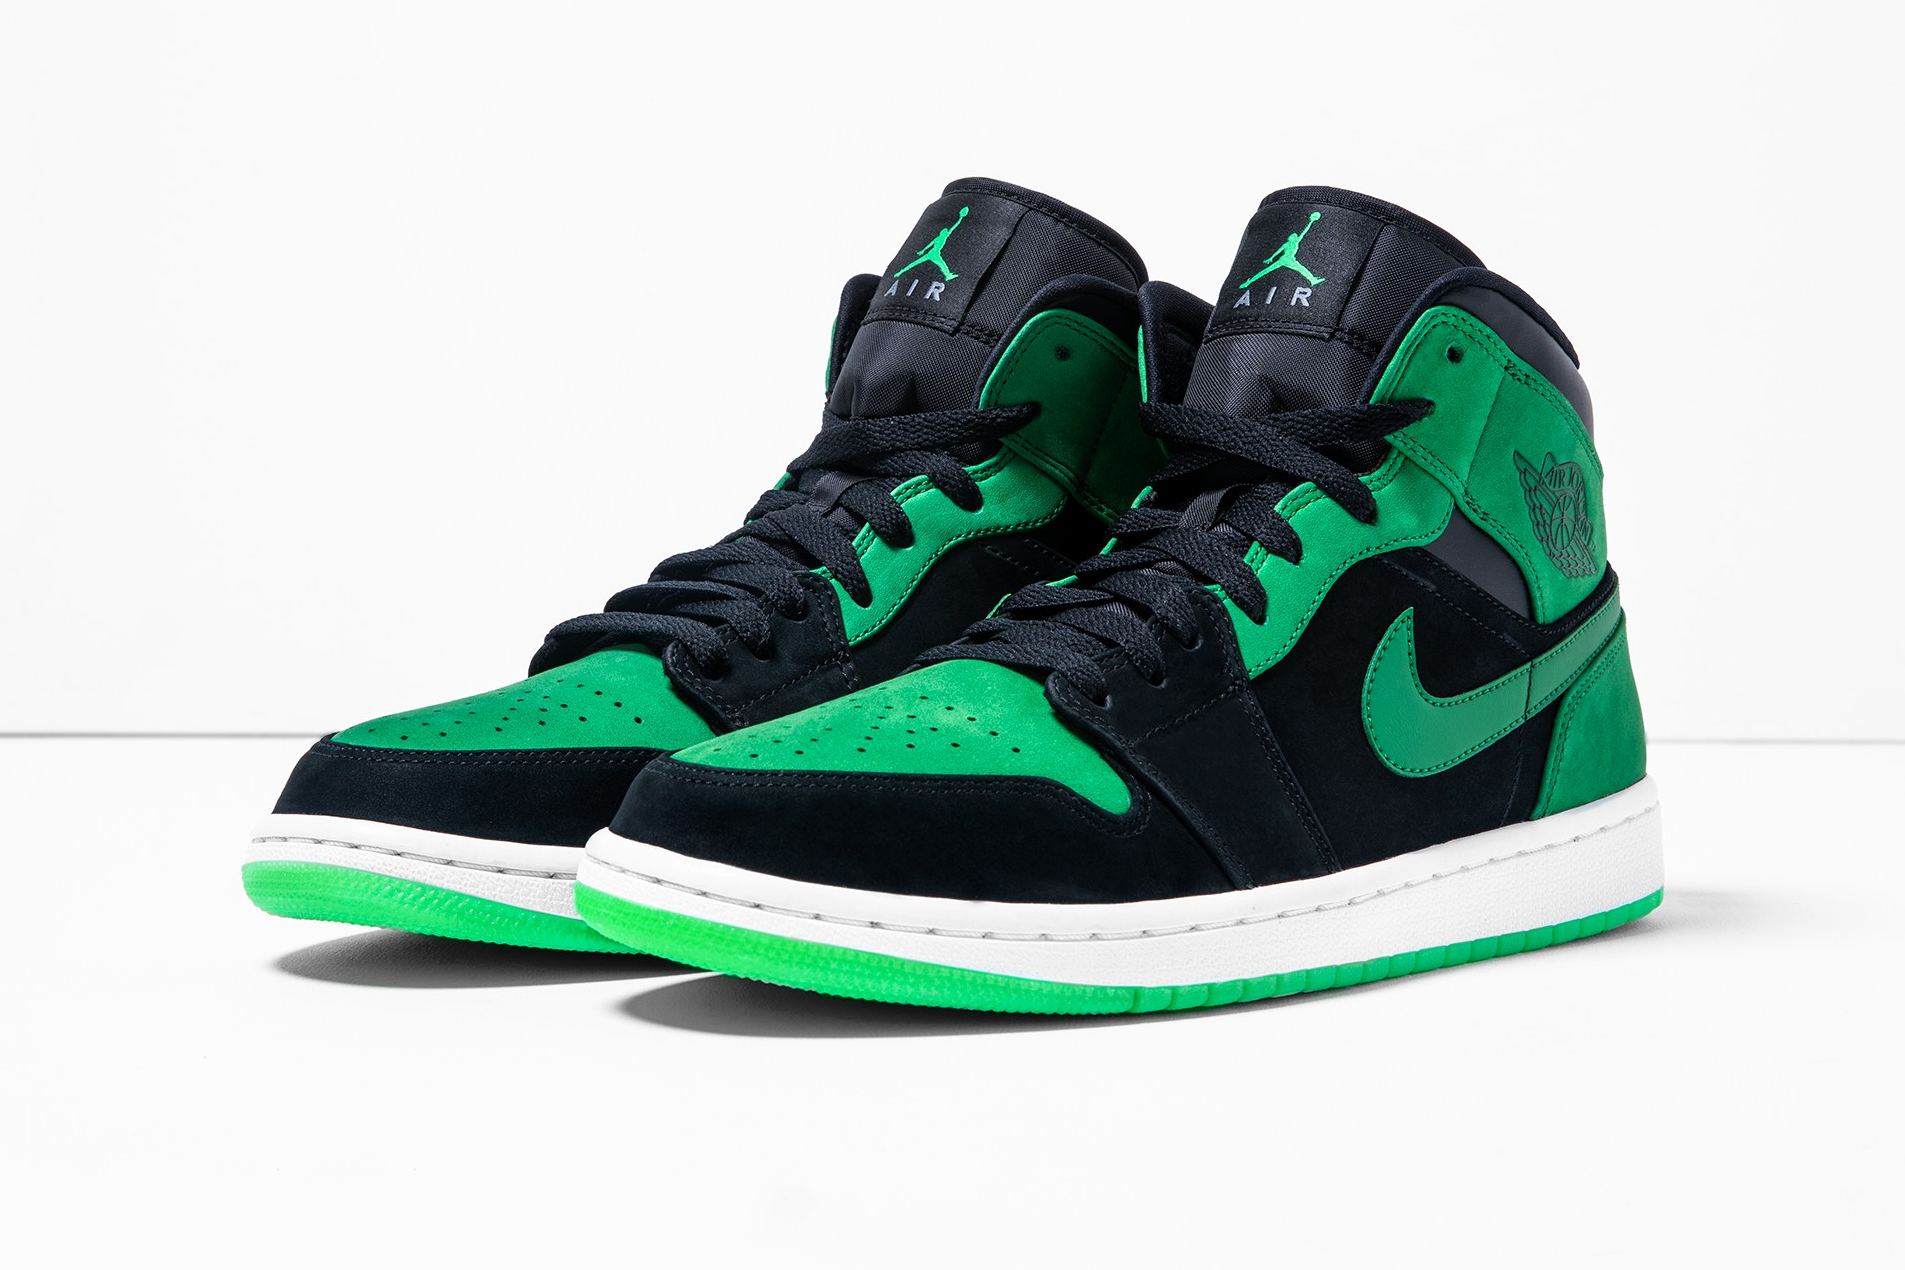 E3 2018 Exclusive Xbox Air Jordan 1 Official Look Black Green Mids jordan brand